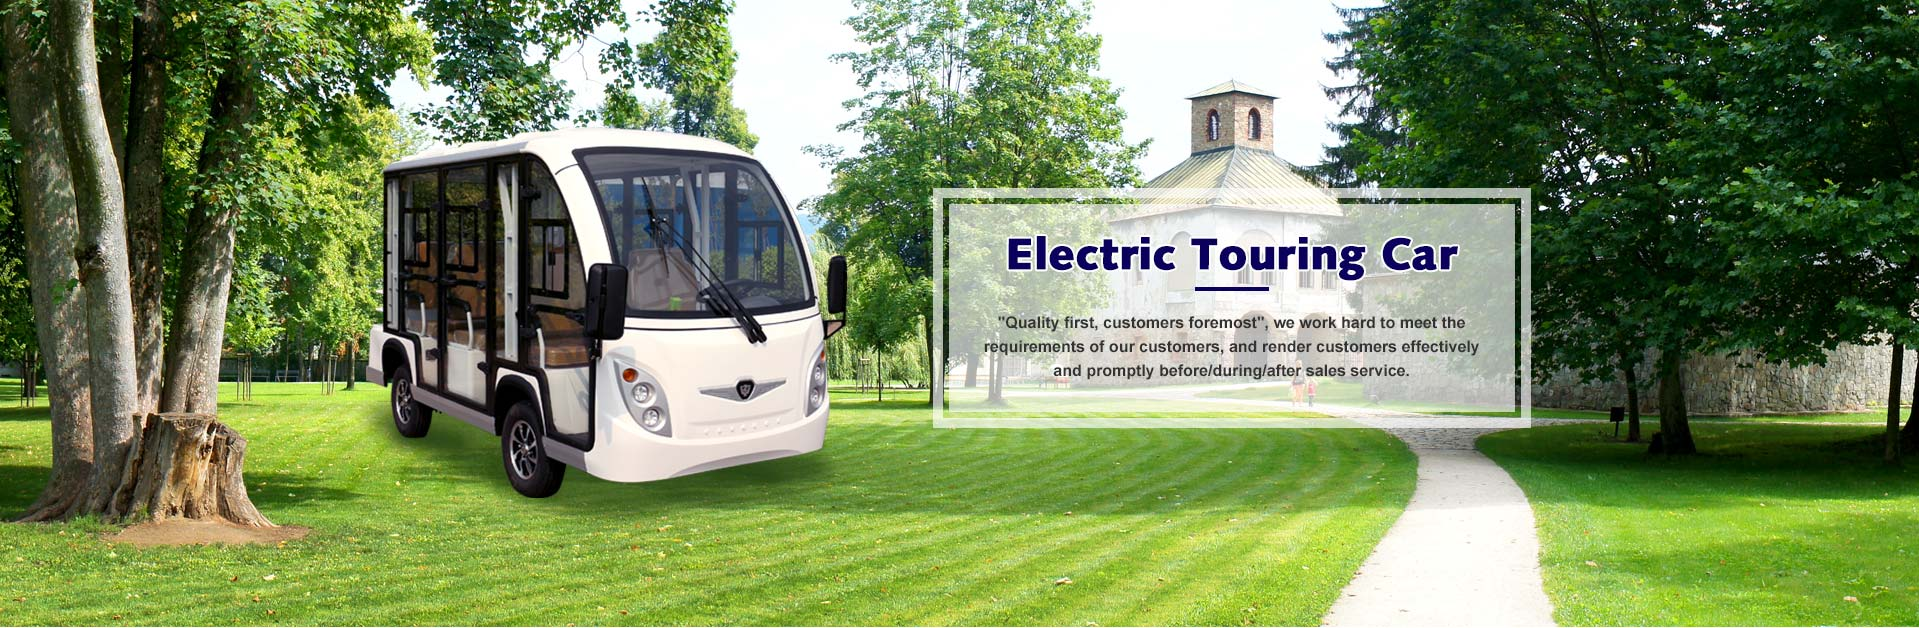 Electric Sightseeing Cars